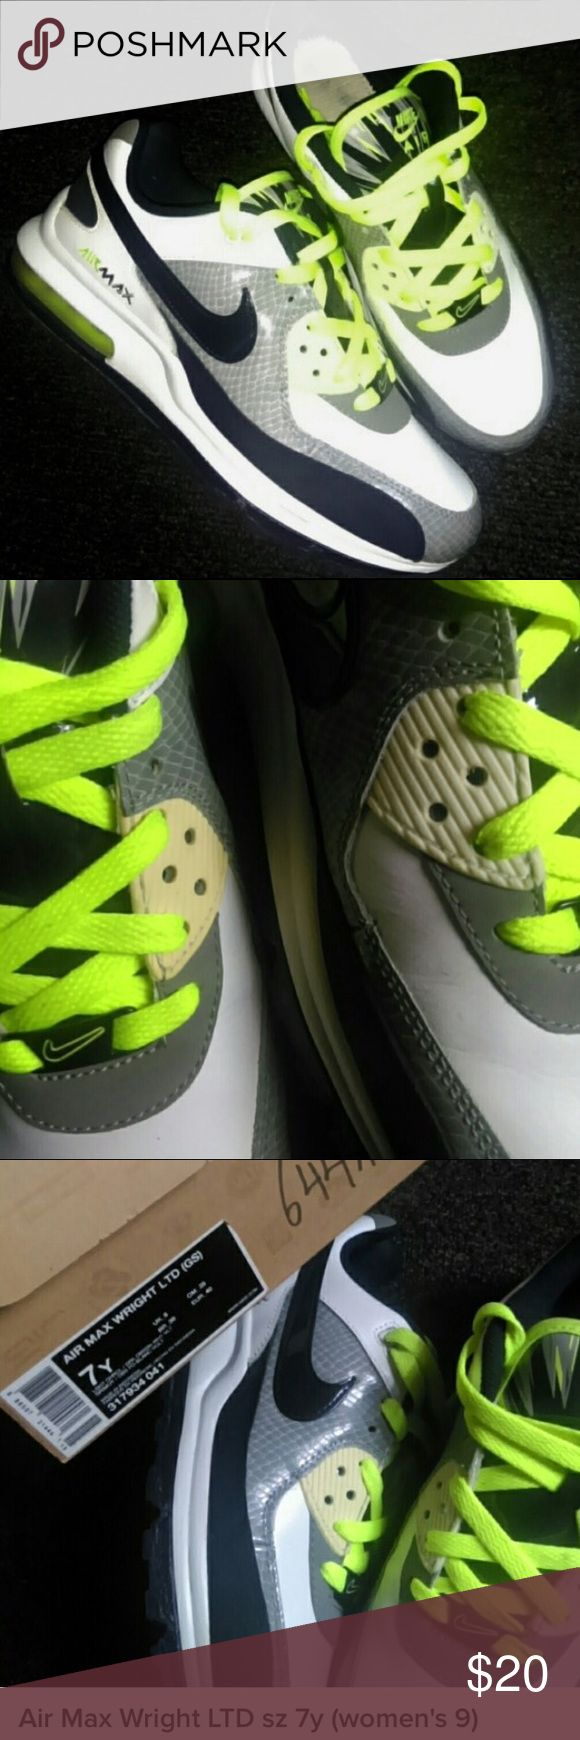 eaf24b4d2b4a nike air max ltd 2 black black wht neon green